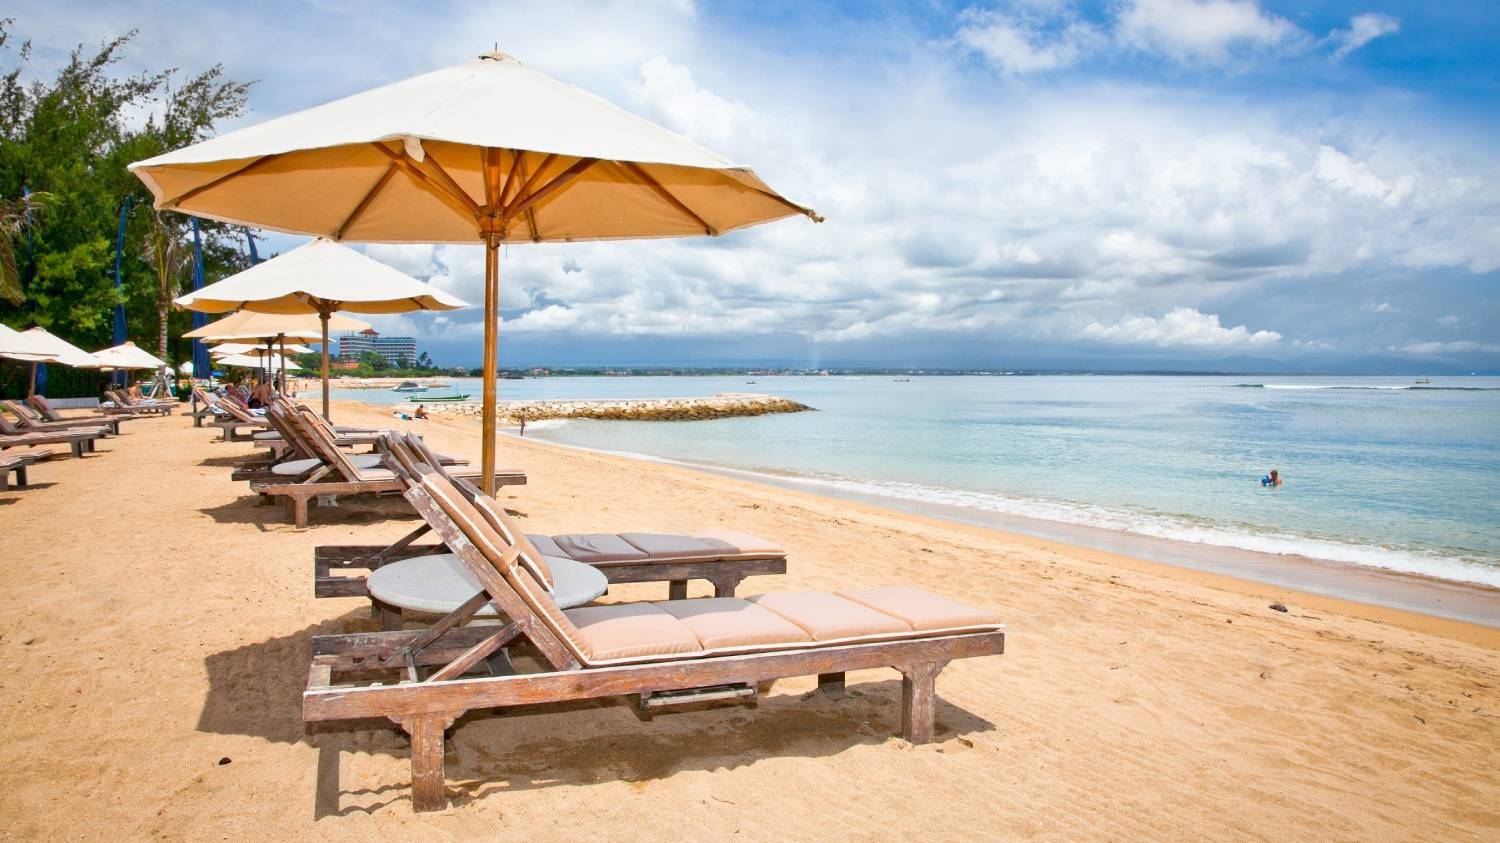 Sanur - Things To Do In Bali